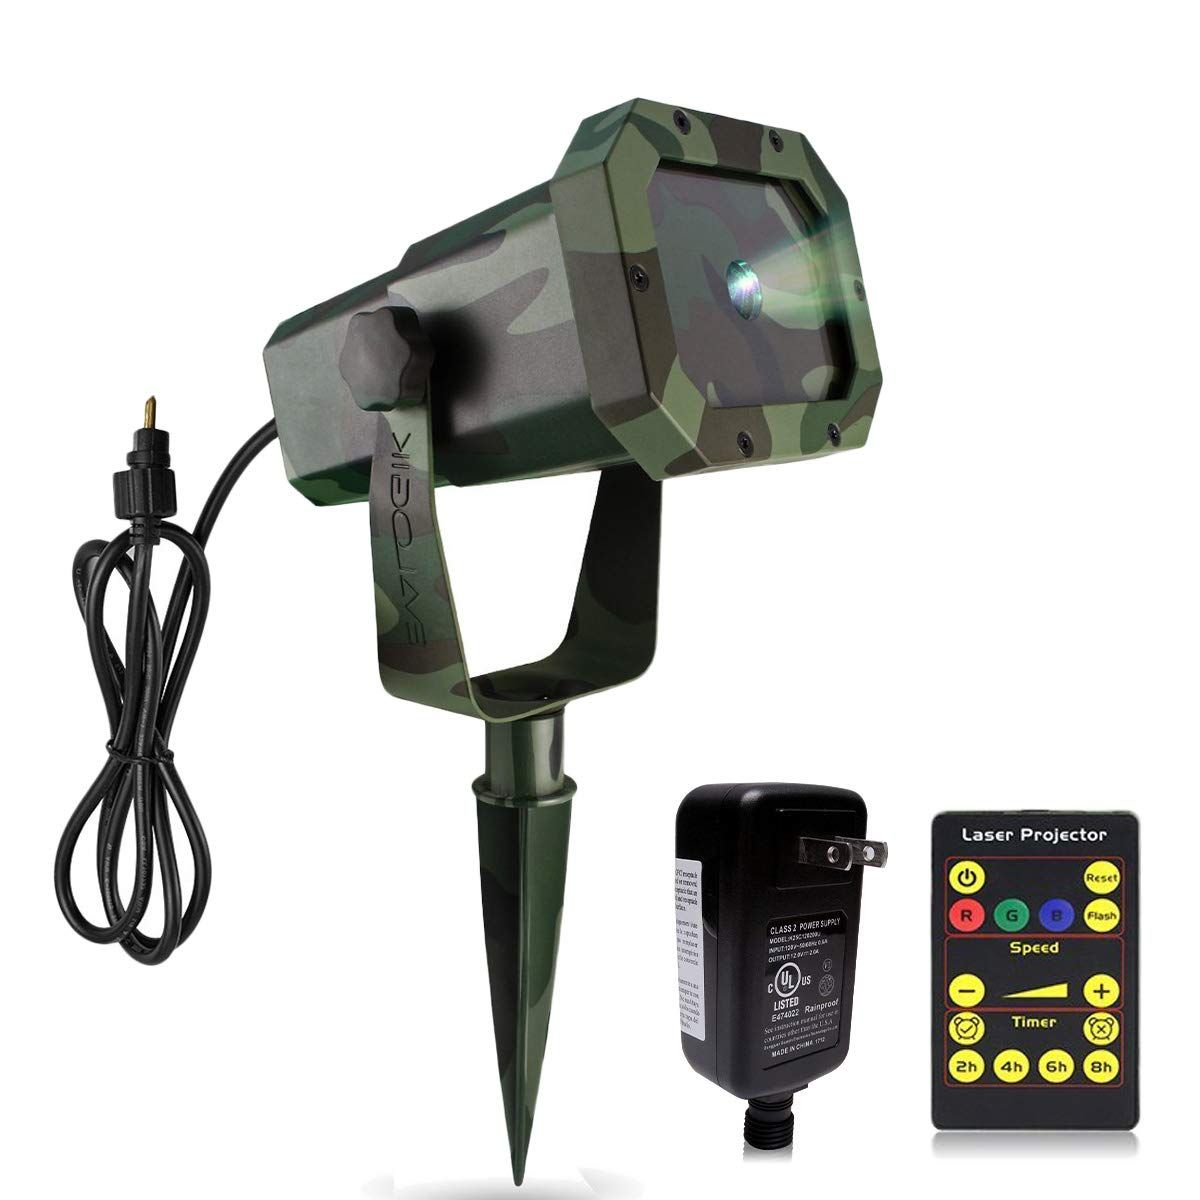 Garden Decoration Moving RGB 20 Patterns Outdoor Waterproof Laser Projector Light Party with RF Remote Control /& Timer Perfect for Lawn